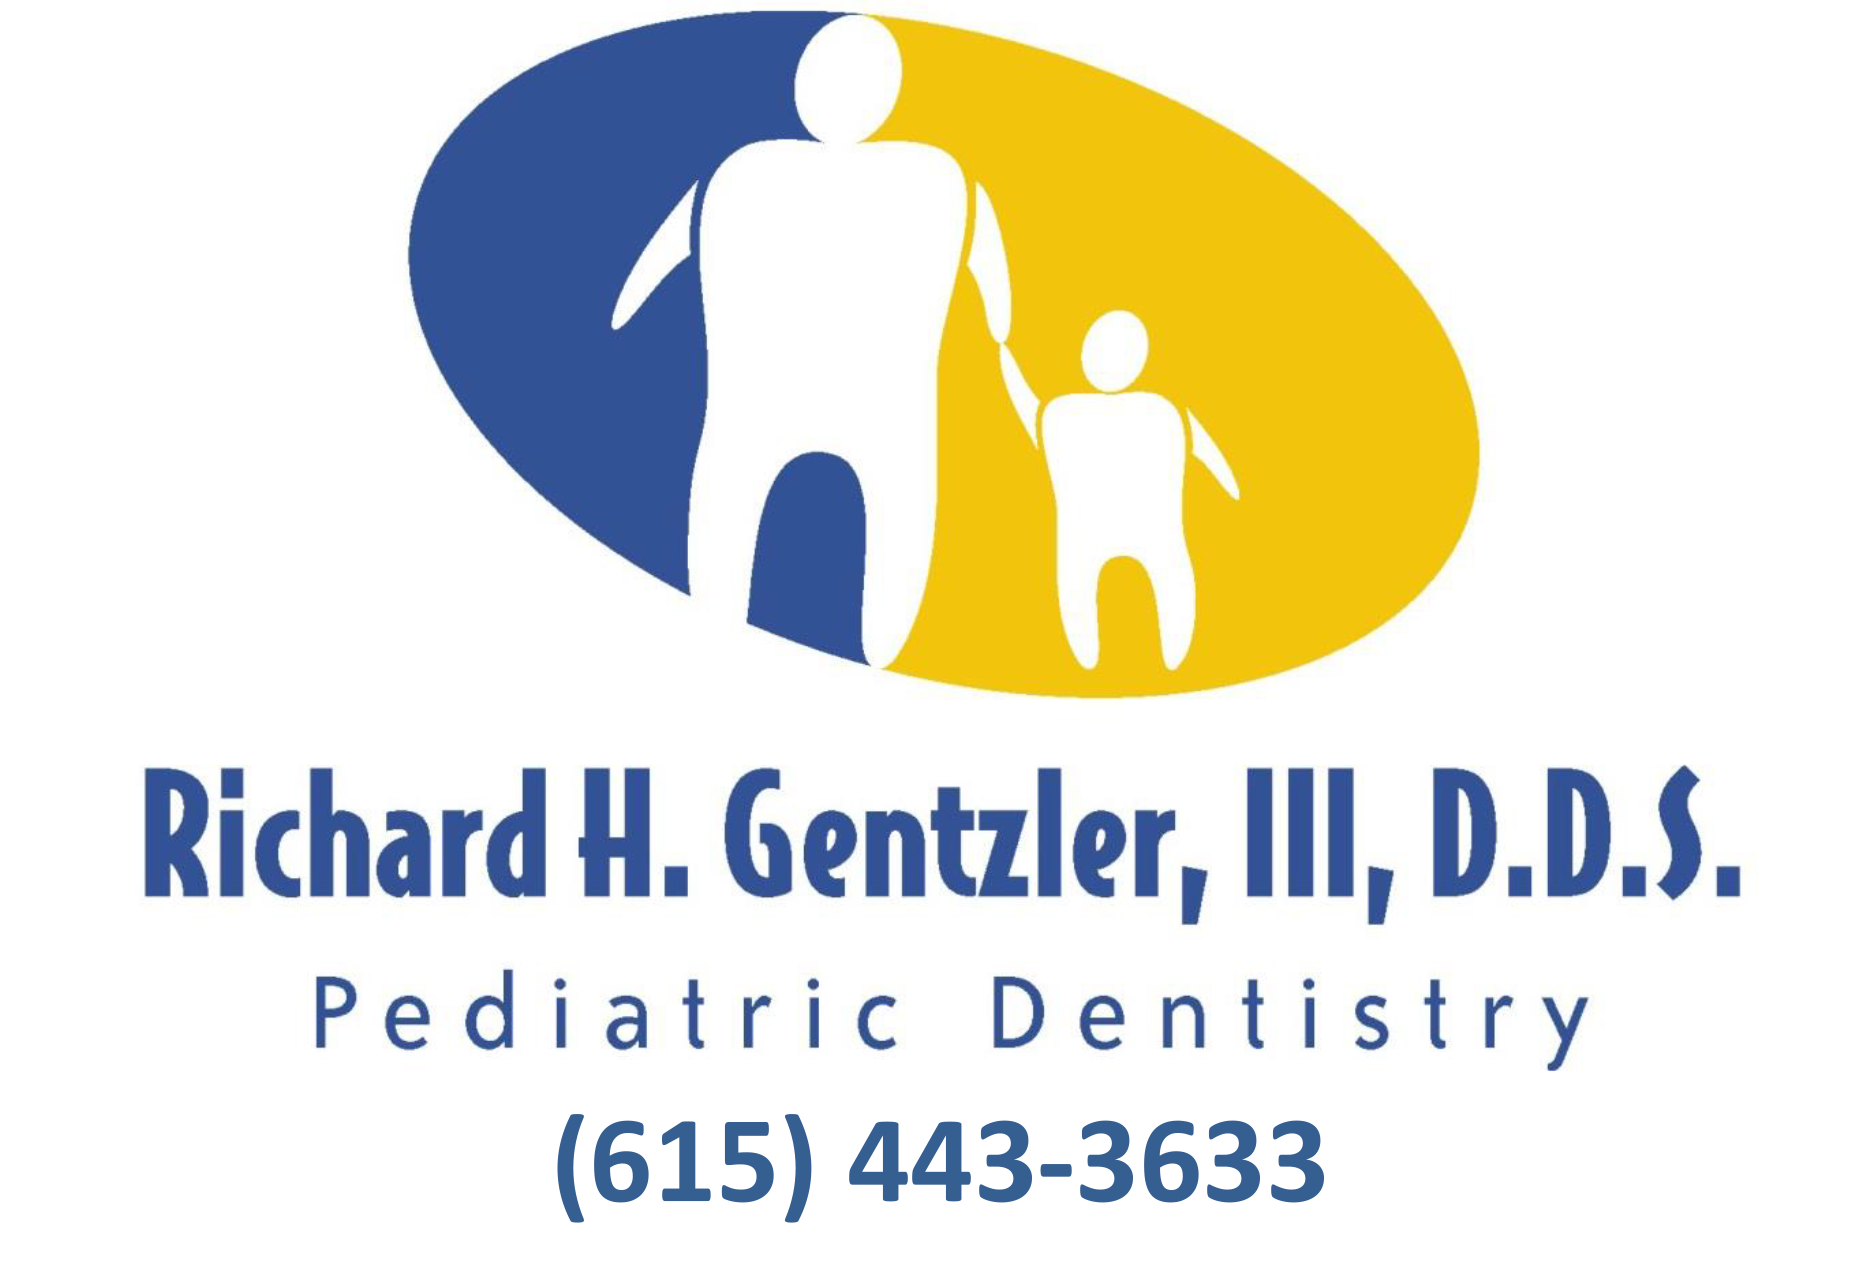 Gentzler Pediatric Dentistry